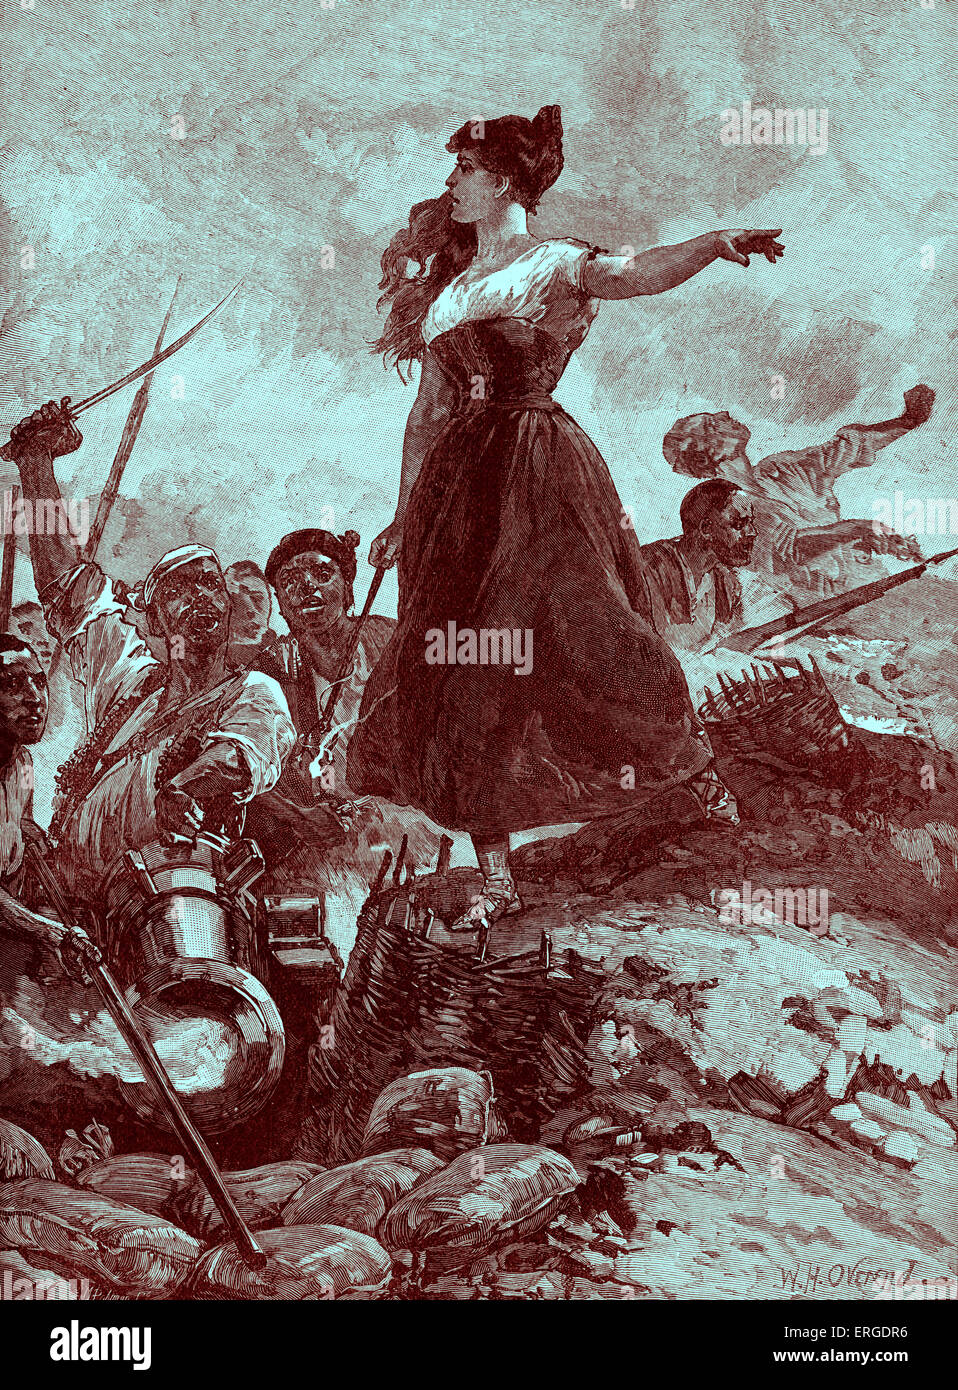 Heroism of the Maid of Saragossa / Zaragoza, Spain, 1808, by W. H. Overend. Agustina Raimunda María Saragossa Doménech, Stock Photo